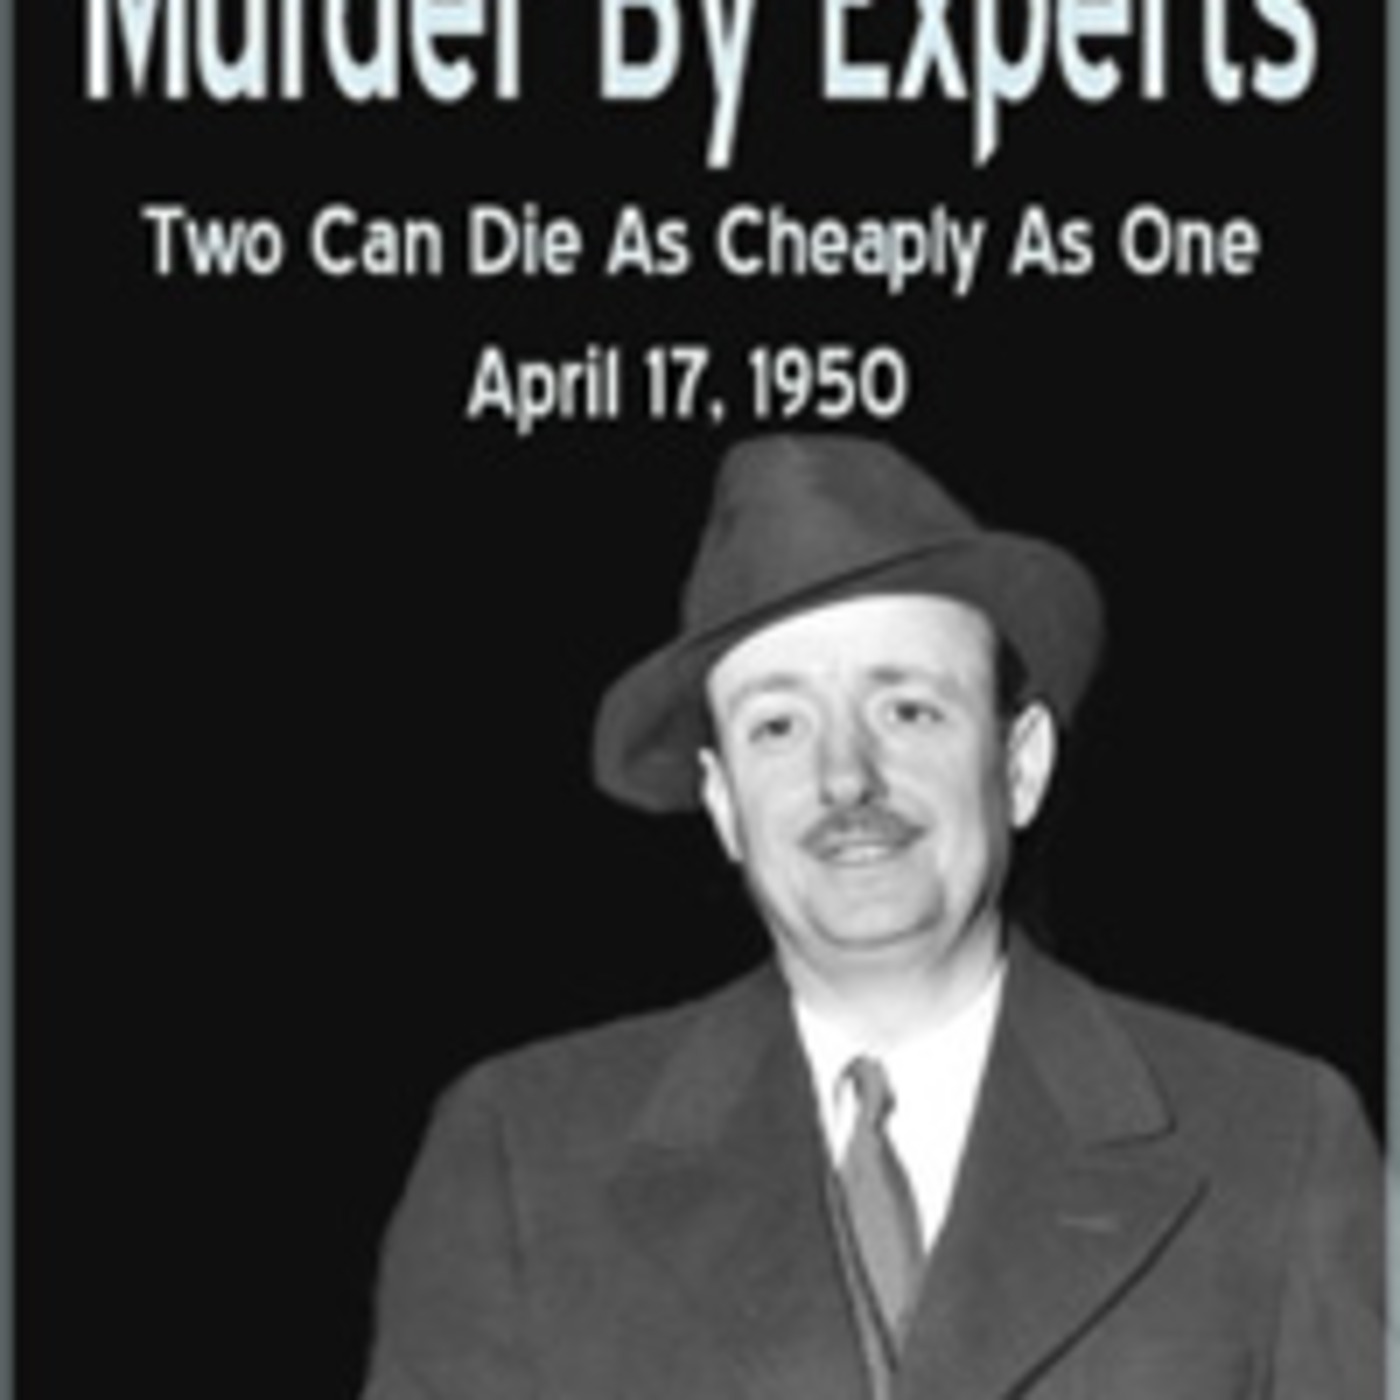 Murder By Experts - Two Can Die As Cheaply As One (04-17-50)